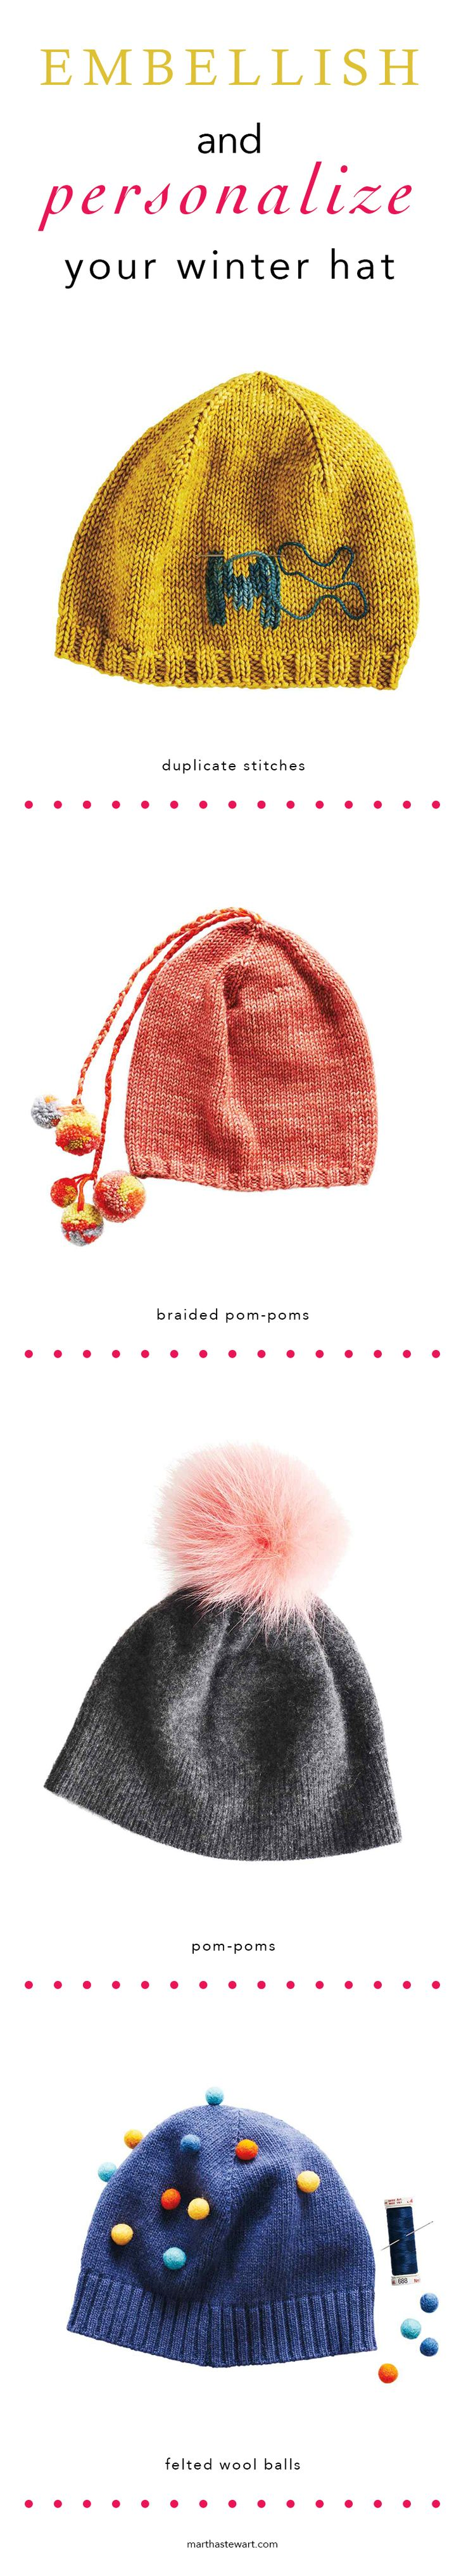 Knitting Pattern For Running Hat : 17 Best images about Knitting on Pinterest Free pattern, Free scarf knittin...